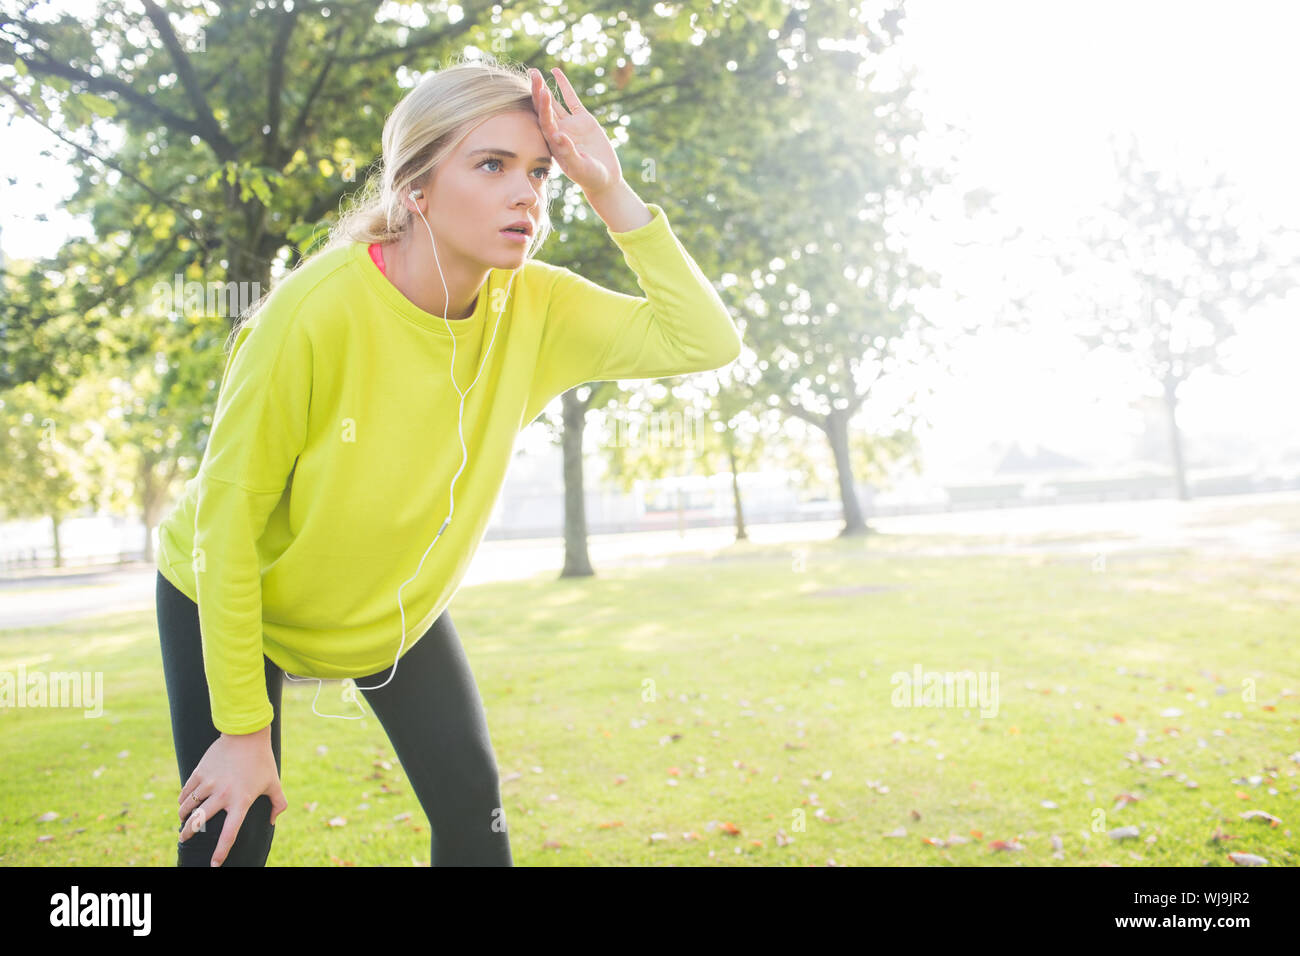 Active exhausted blonde pausing after running in a park on a sunny day Stock Photo